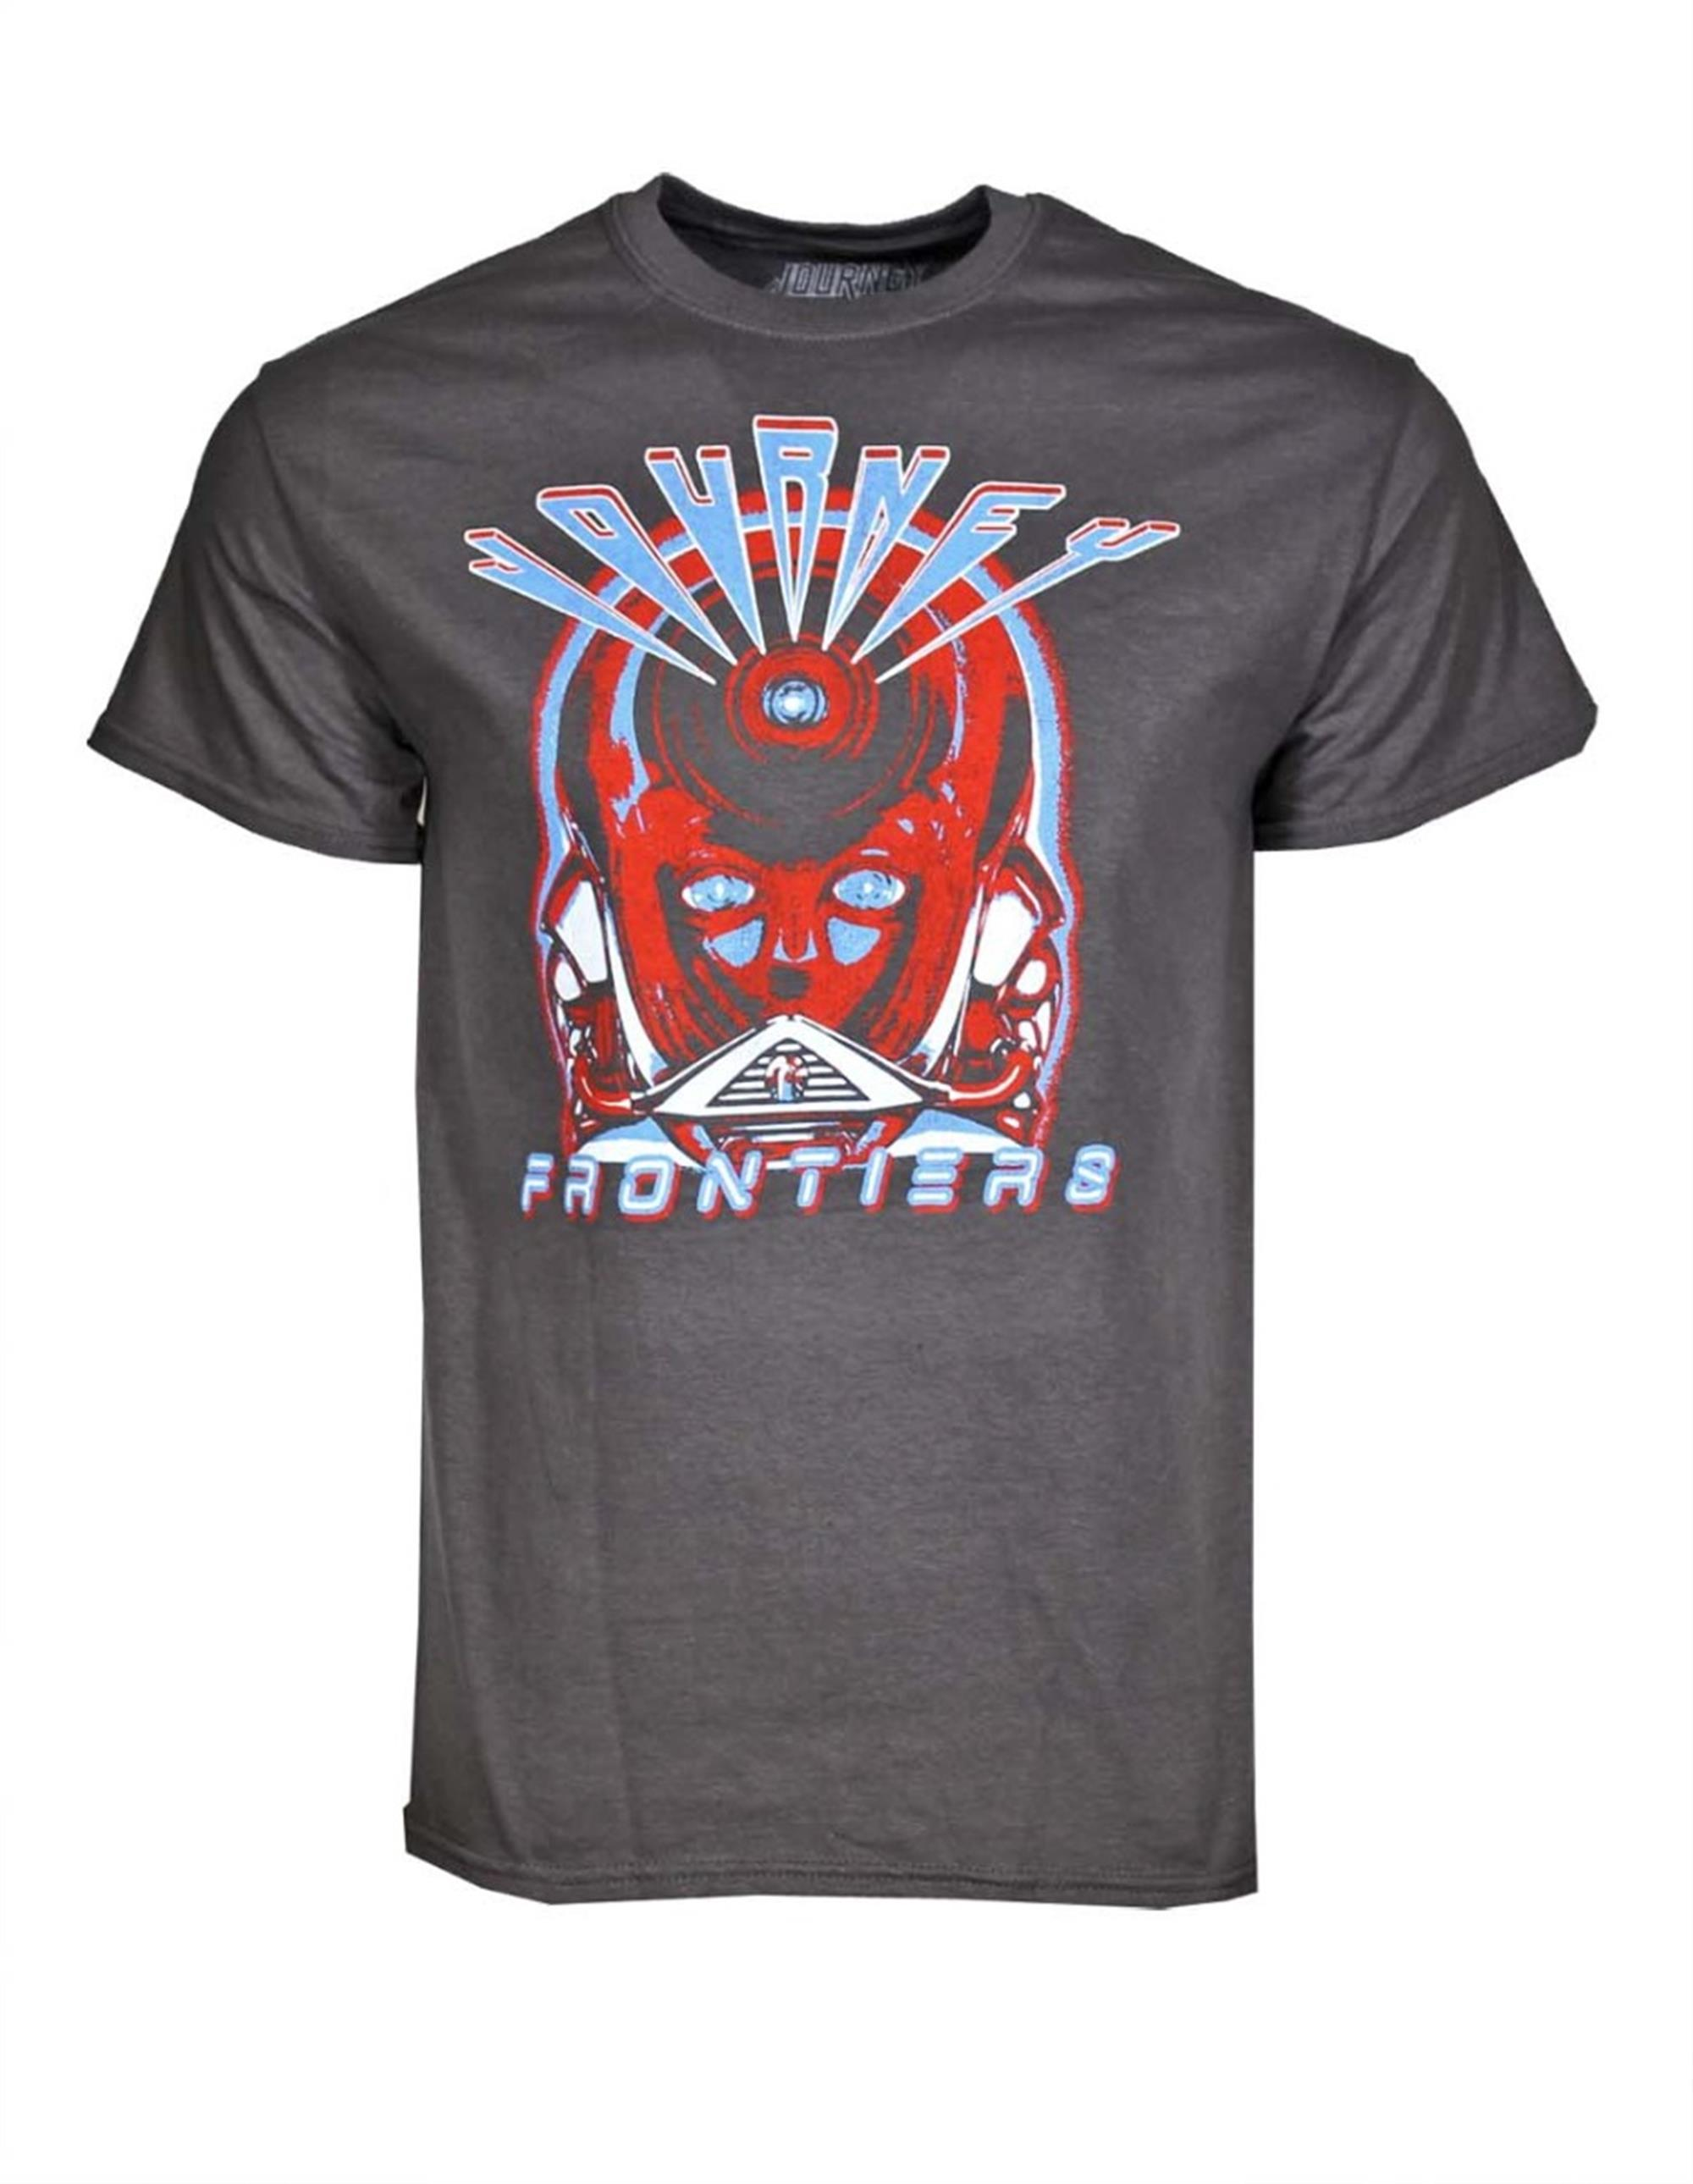 Journey Charcoal Frontiers T-Shirt